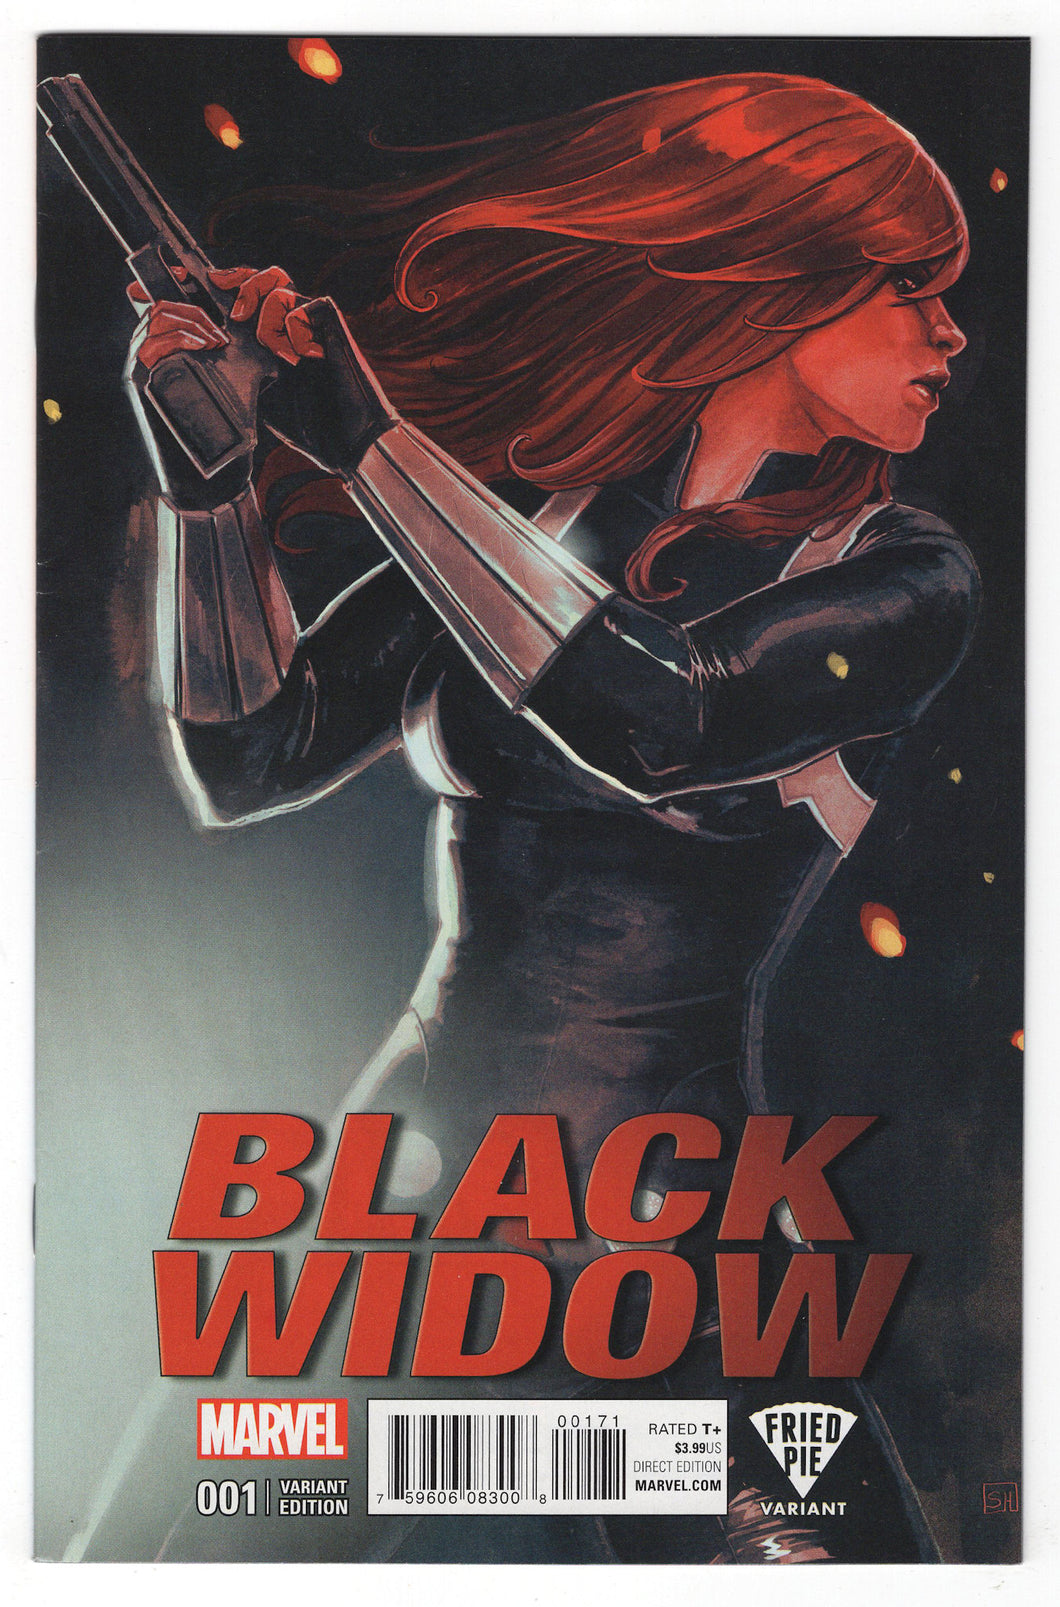 Black Widow #1 Stephanie Hans Fried Pie Variant Cover (2016) Front